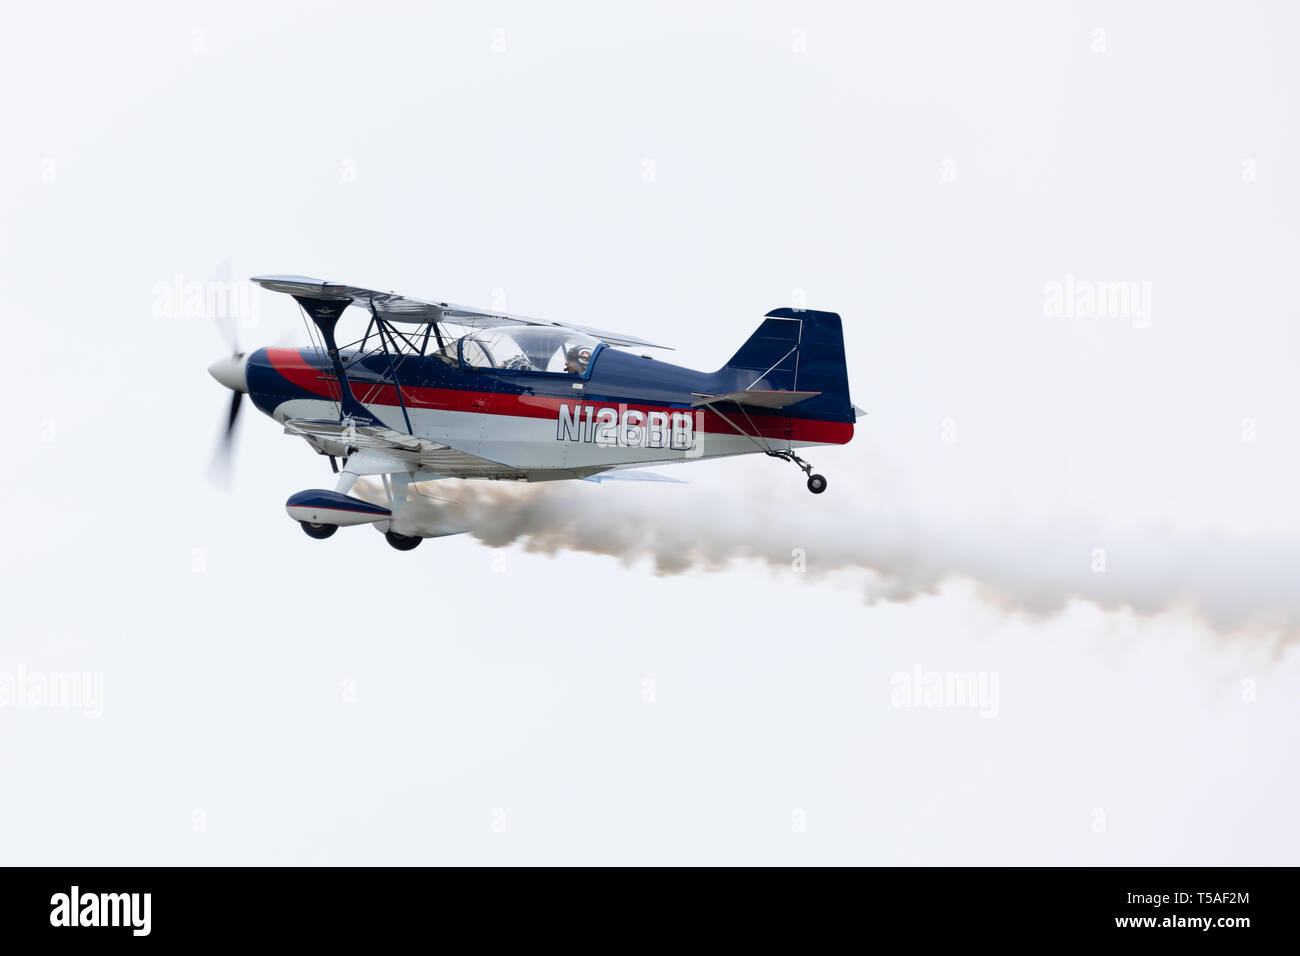 Louisville, Kentucky, USA - April 13, 2019: Thunder Over Louisville, Pitts S2C trailing smoke flying by over the Ohio River - Stock Image